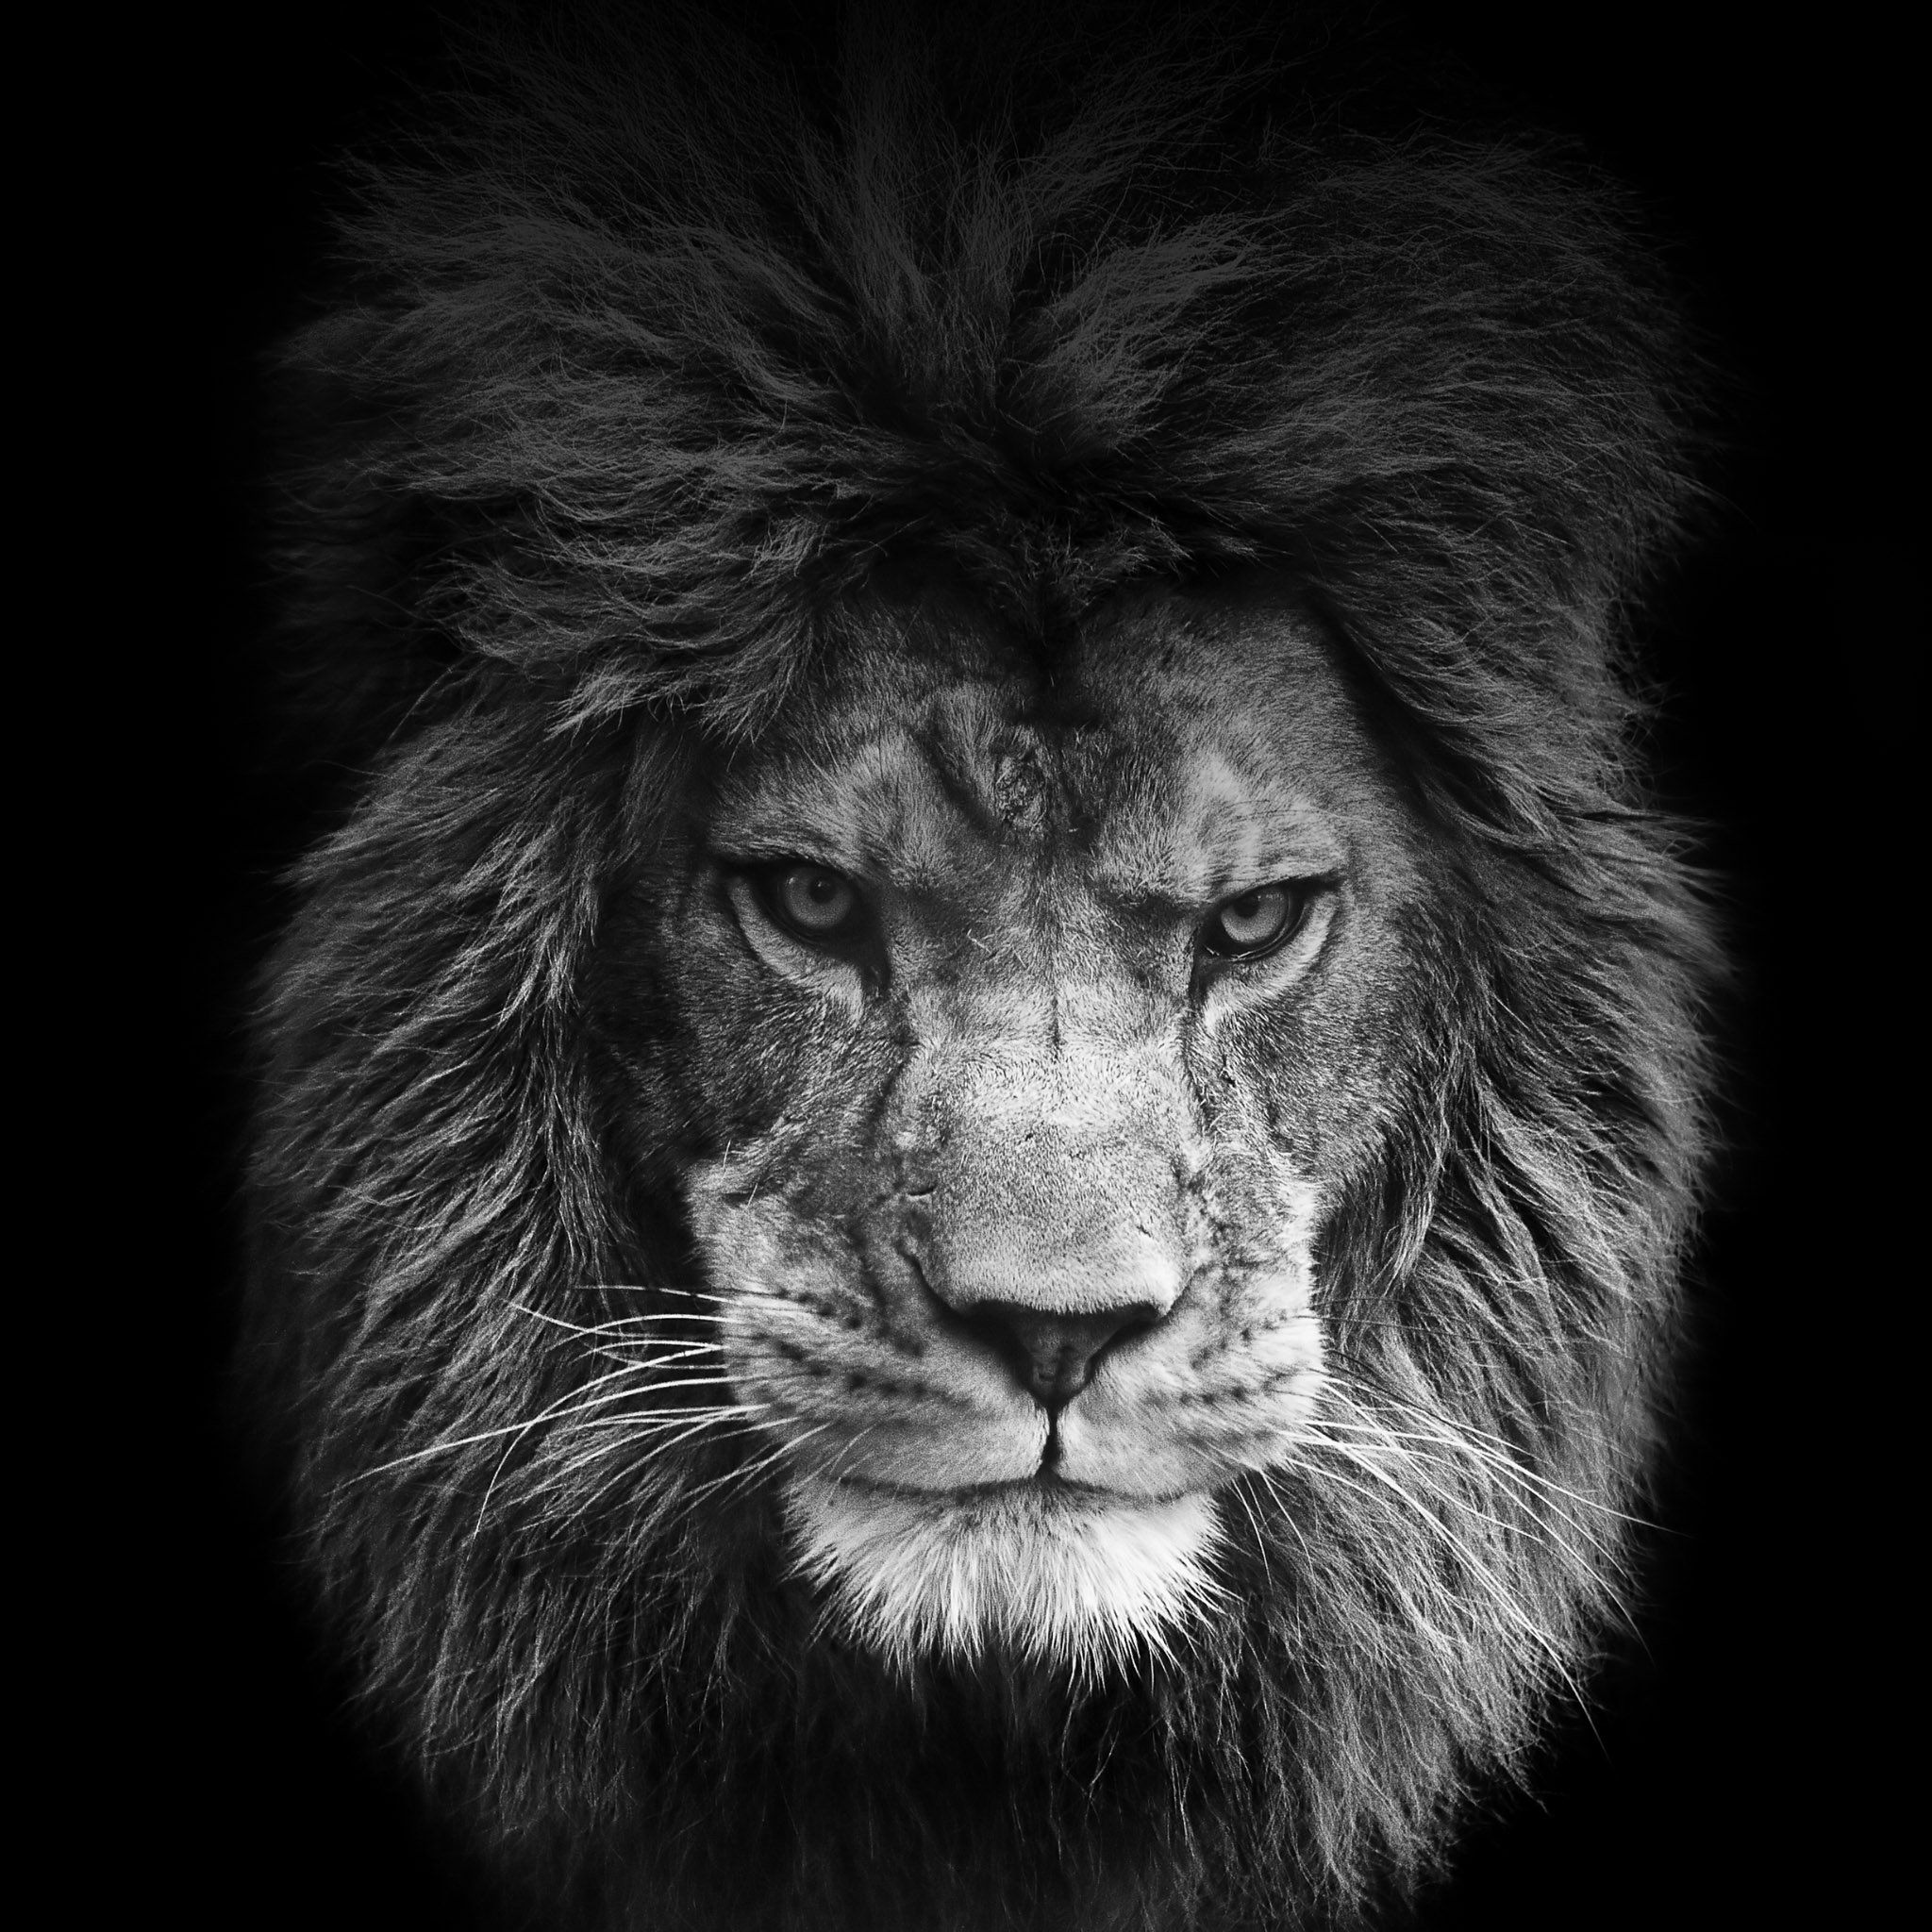 Free Download Lion Roar Iphone Wallpaper Wallpapers Background For Desktop Mobile Tablet 2048x2048 Black And White Lion Lion Wallpaper Lion Photography